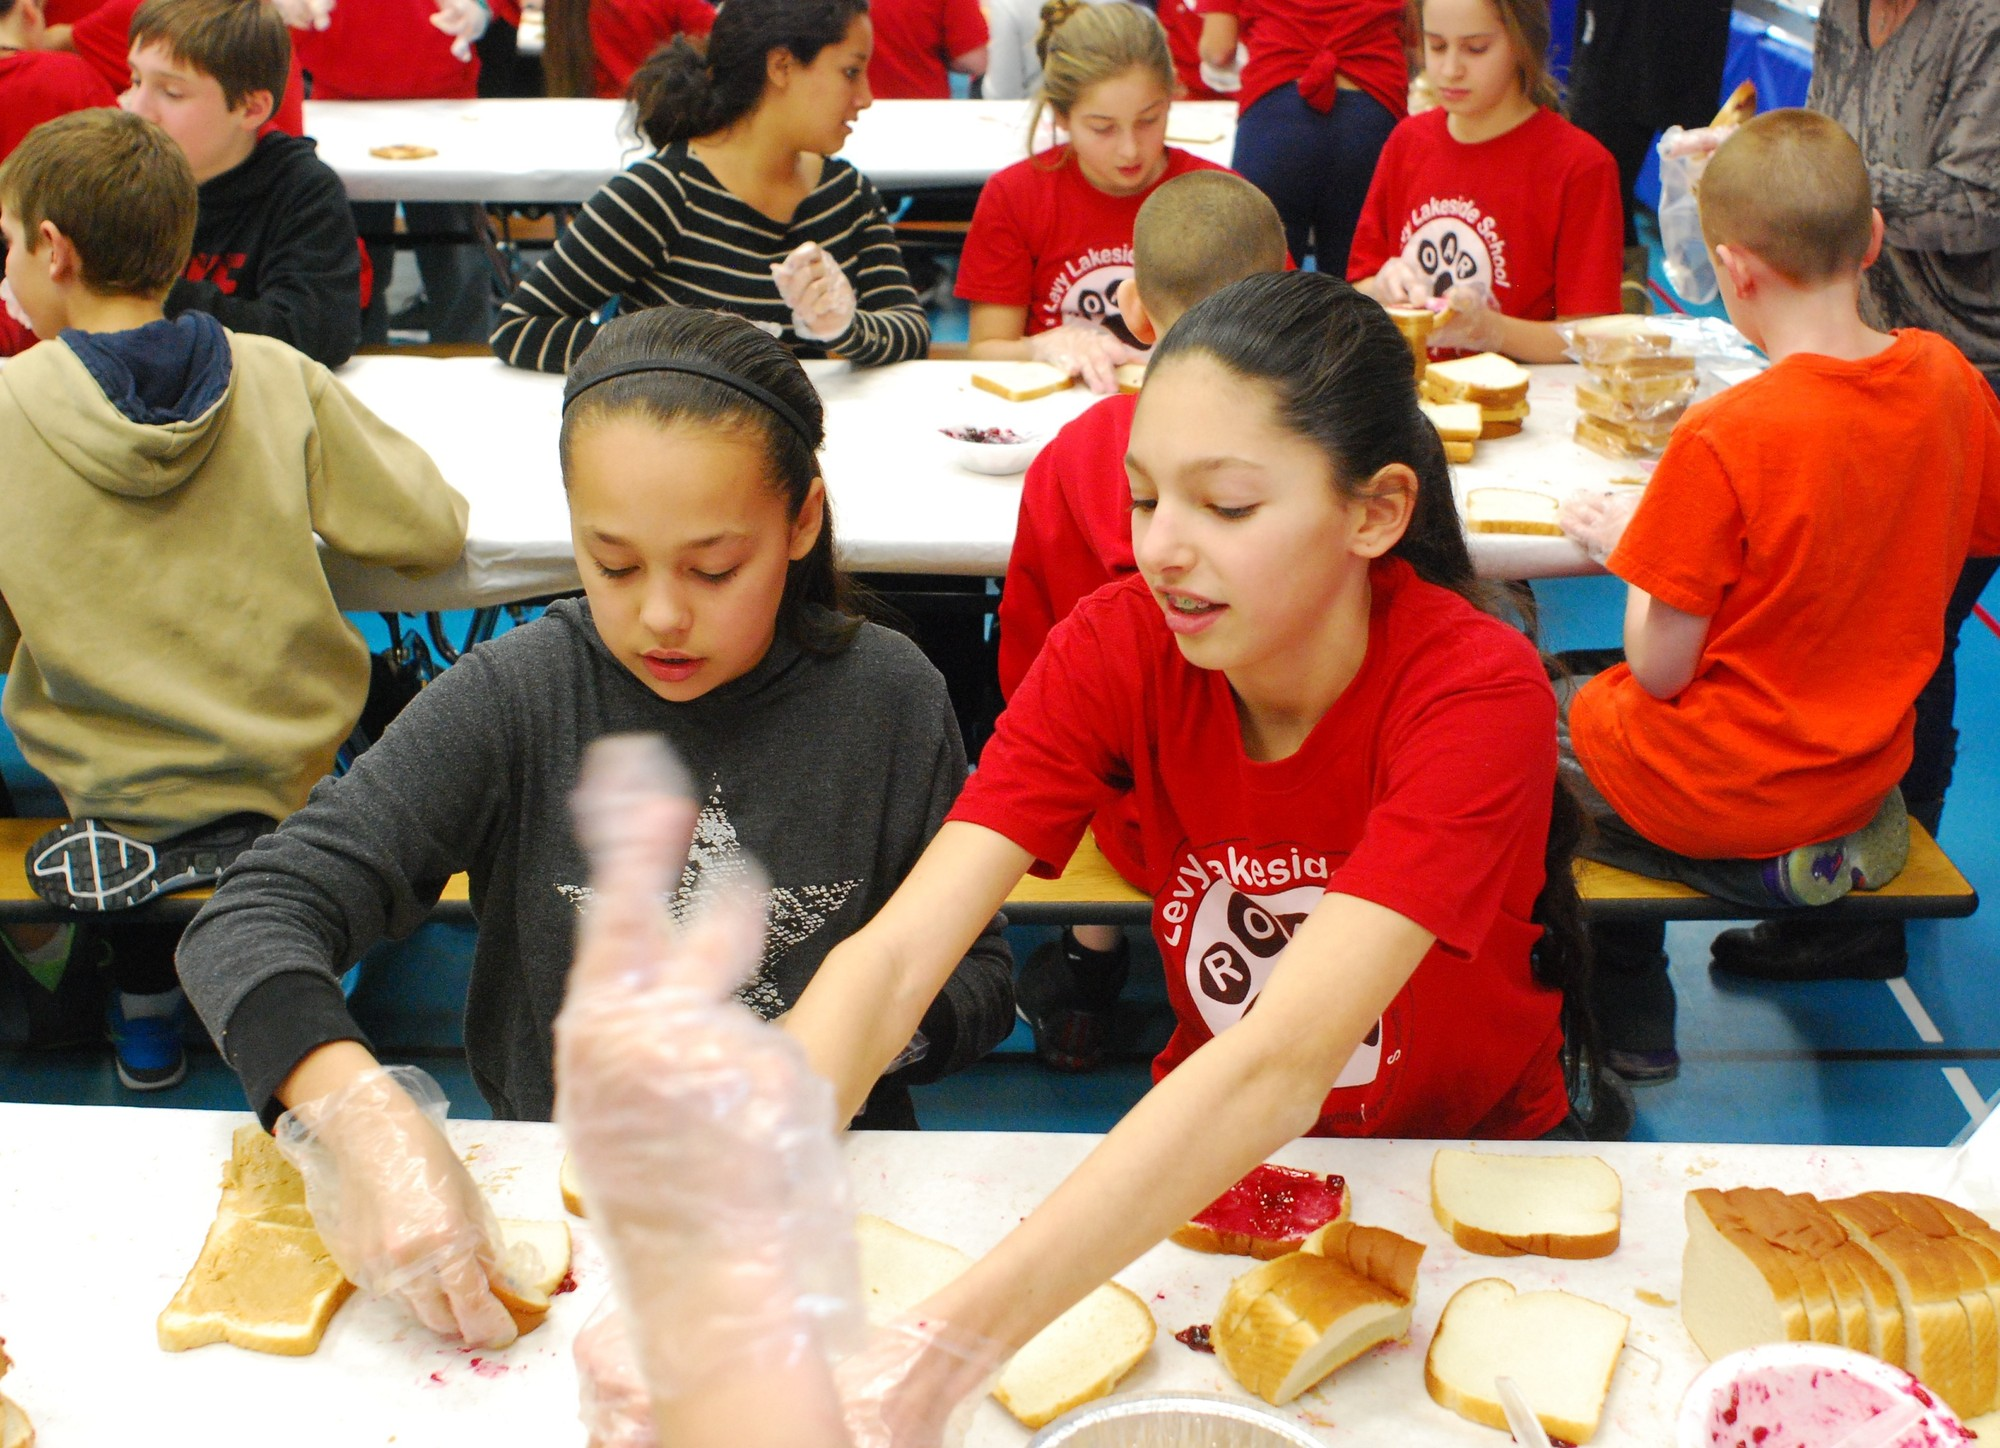 Sophia Marino and Samantha Loew worked together to assemble the sandwiches.